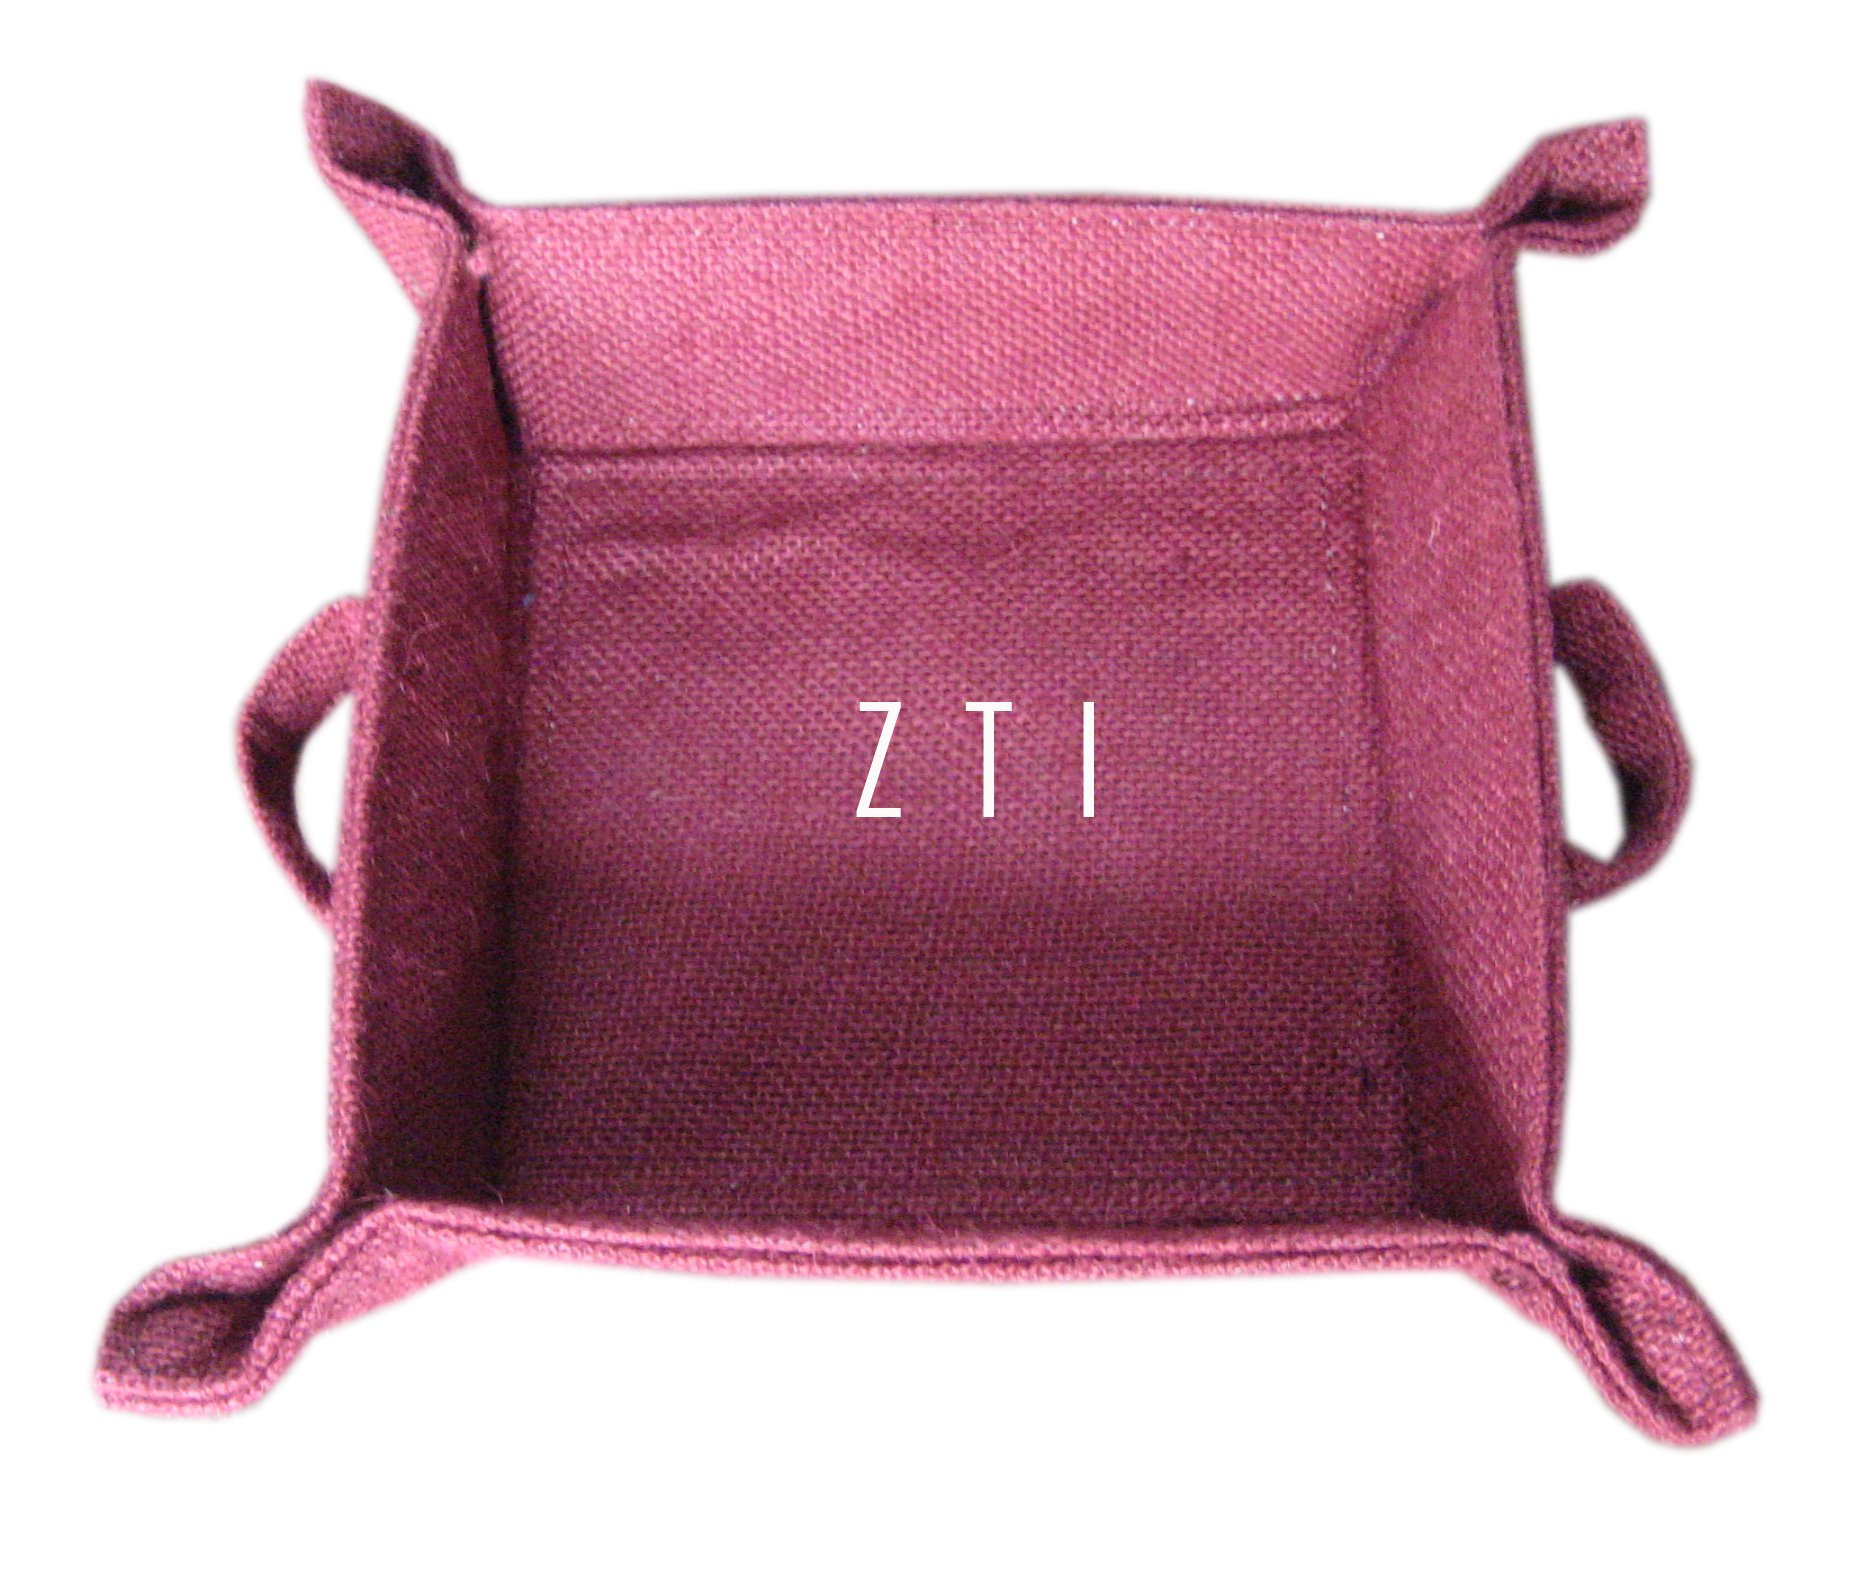 MODEL-NO.-1237-SIZE-16x16cms.-PRICE-USD-0.99